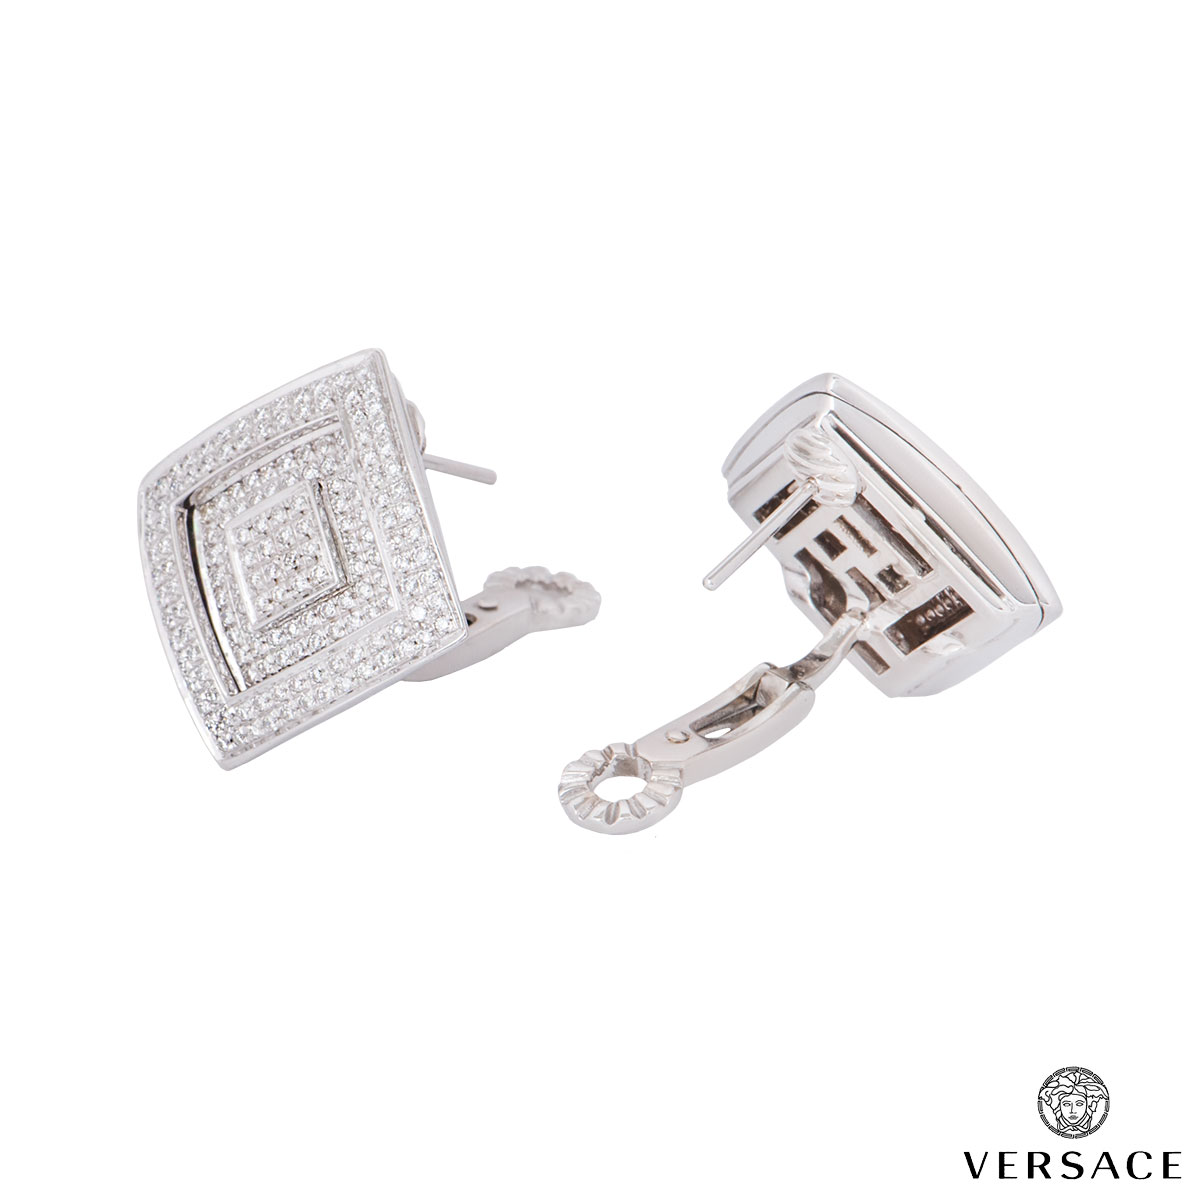 Versace White Gold Diamond Square Earrings